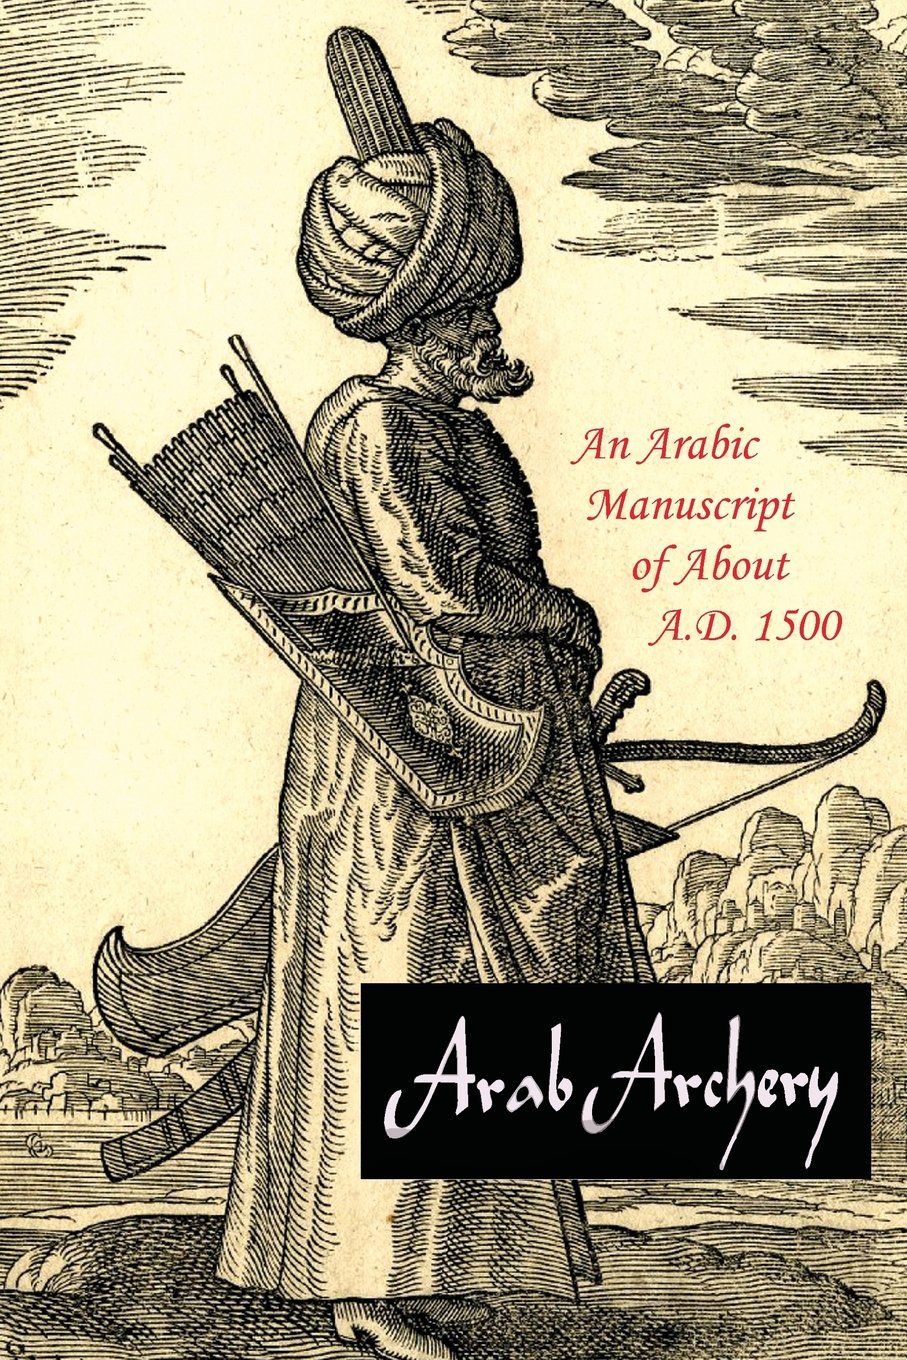 Arab Archery: An Arabic Manuscript of About A.D. 1500